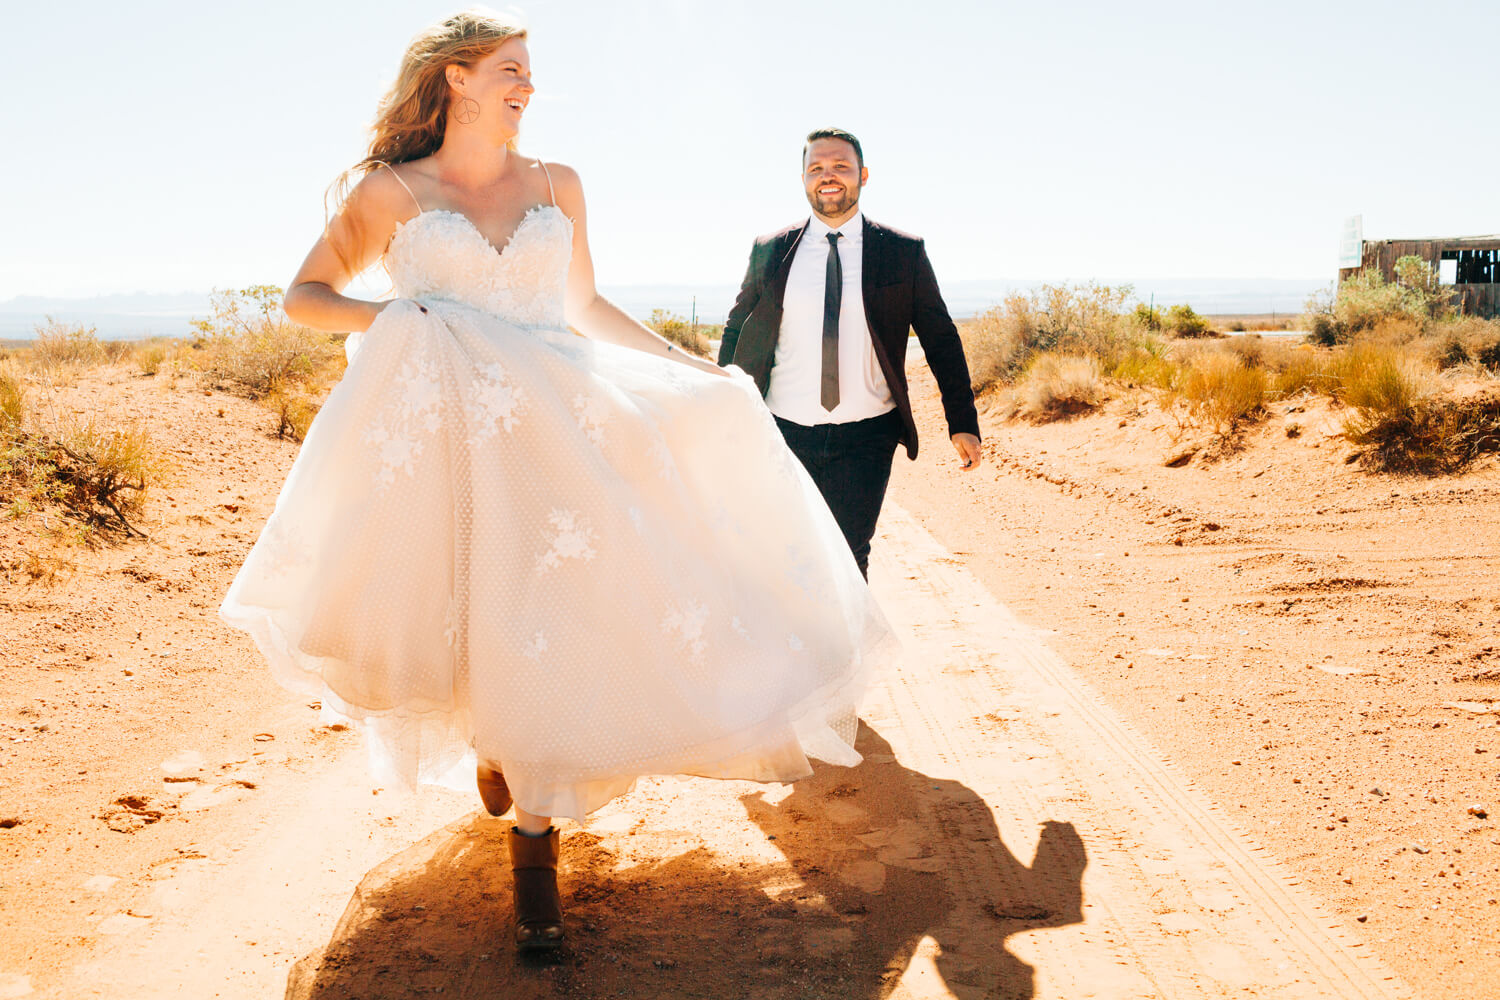 bride and groom running through the desert